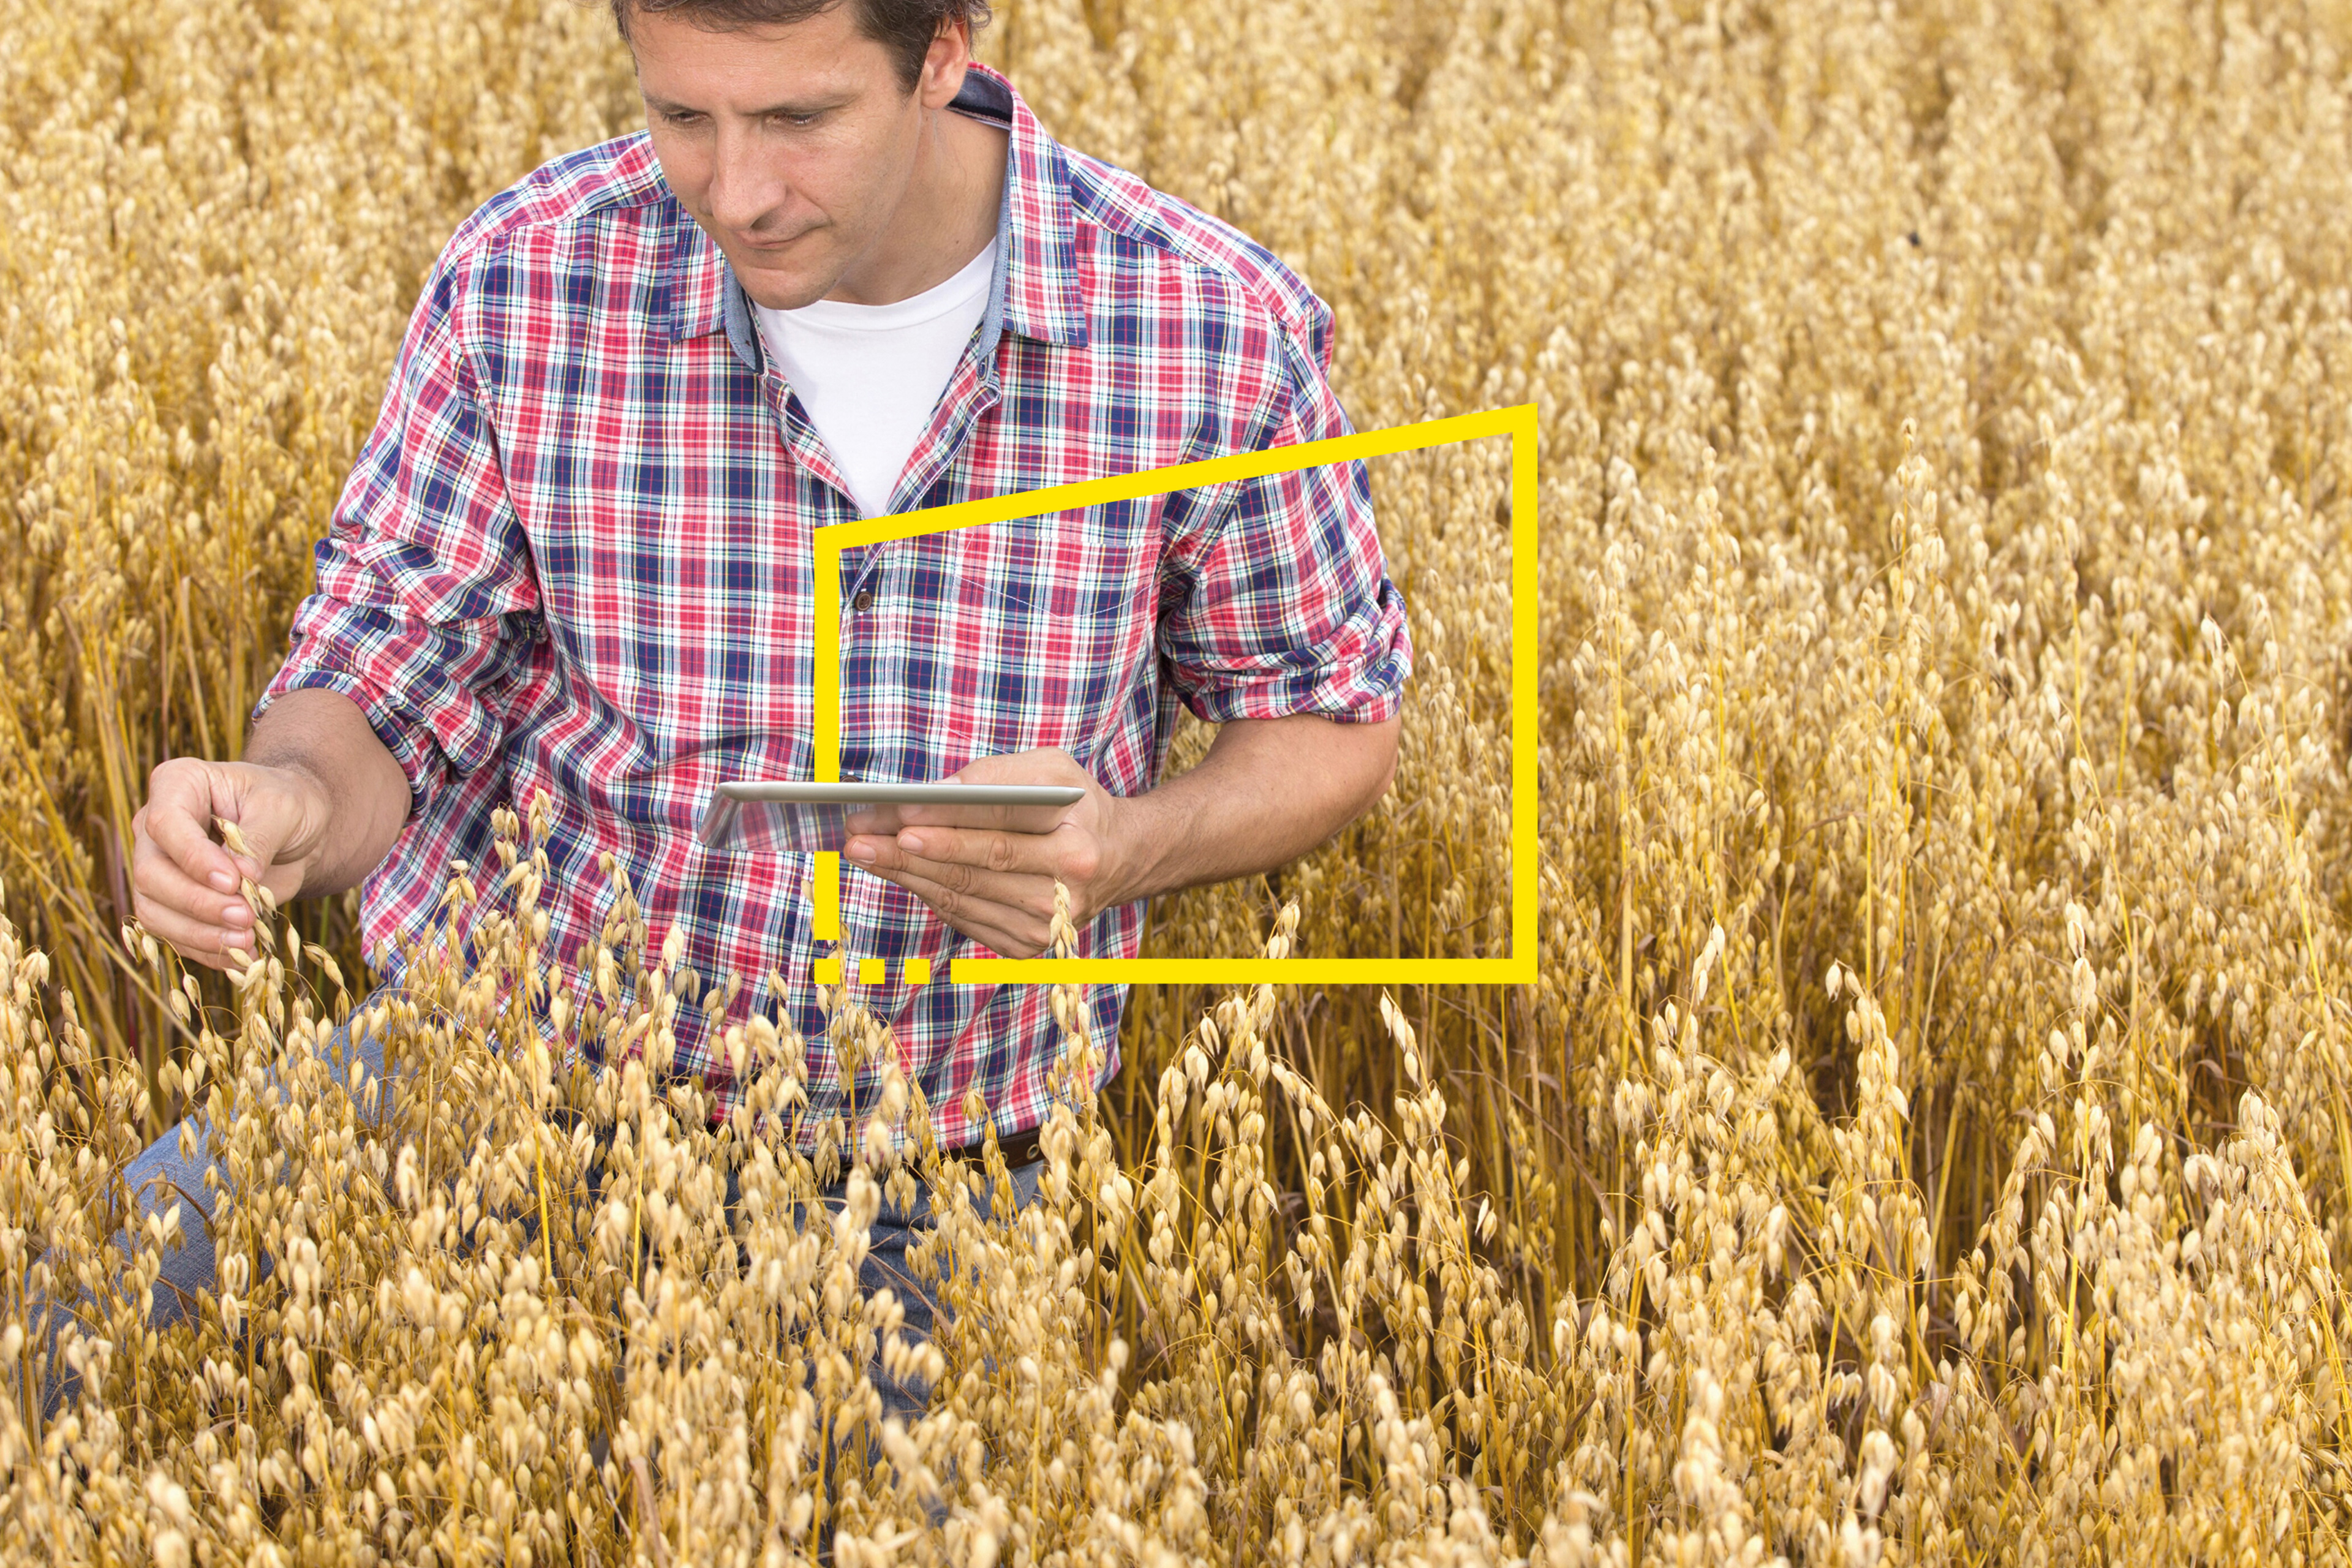 Digital agriculture: enough to feed a rapidly growing world?